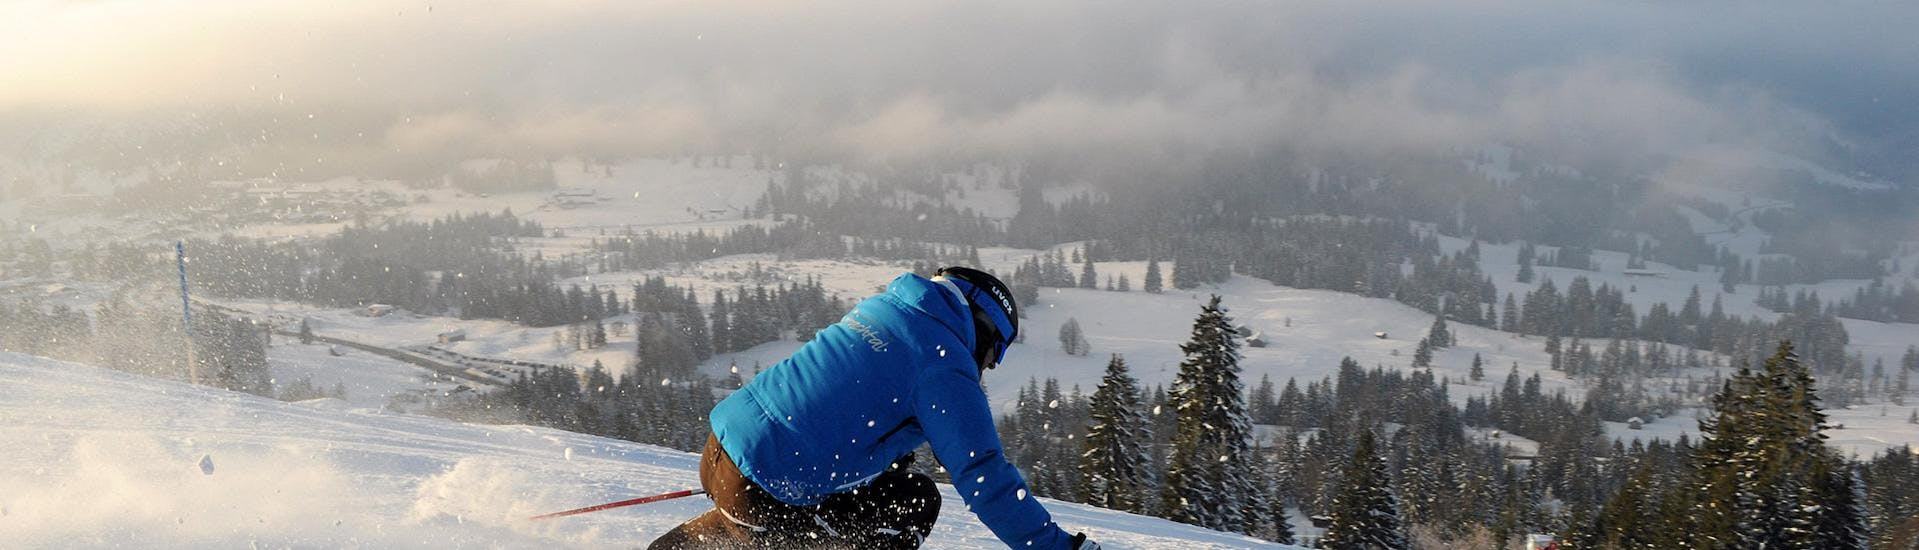 Private Ski Lessons for Adults of All Levels with Ski & Snowboard School Ostrachtal - Hero image